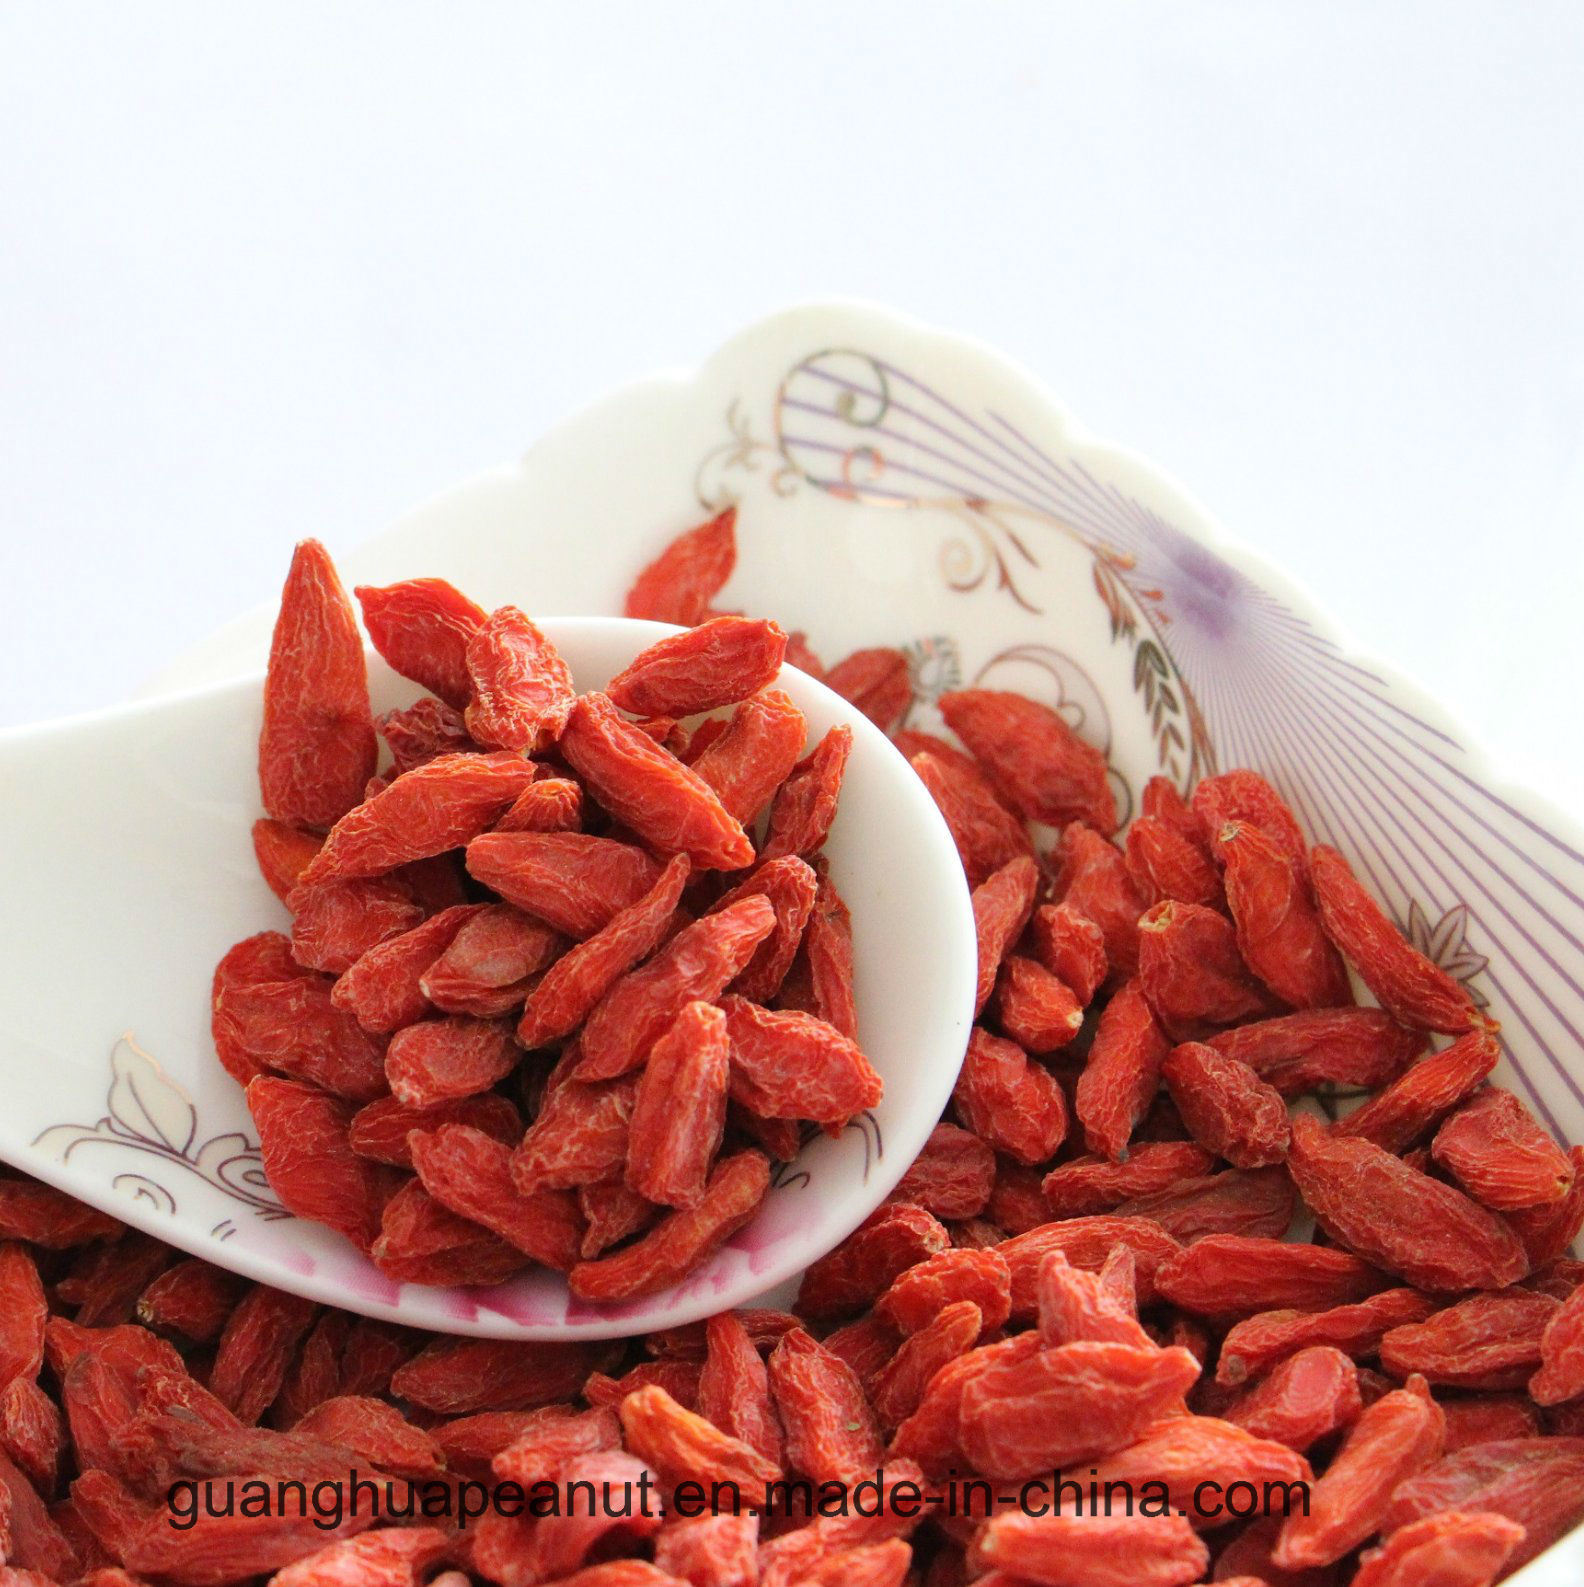 Best Quality Ningxia Dried Goji Berry